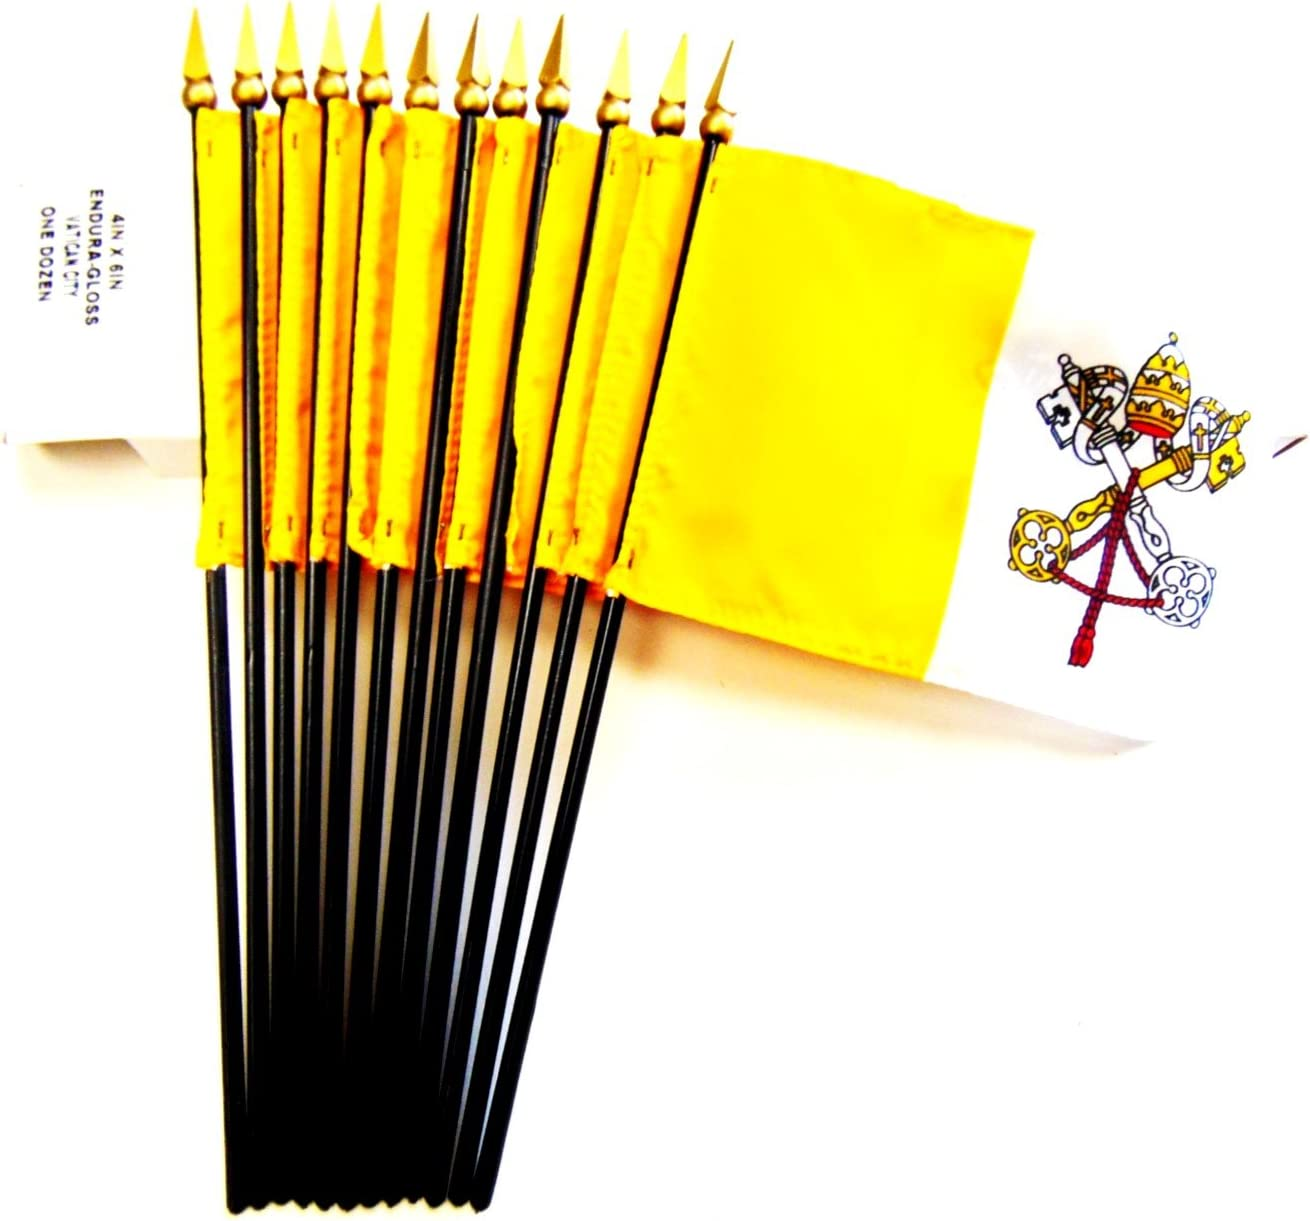 Box of 12 Vatican City 4x6 Miniature Desk /& Table Flags; 12 American Made Small Mini Holy See Pope Flags in a Custom Made Cardboard Box Specifically Made for These Flags MADE IN USA!